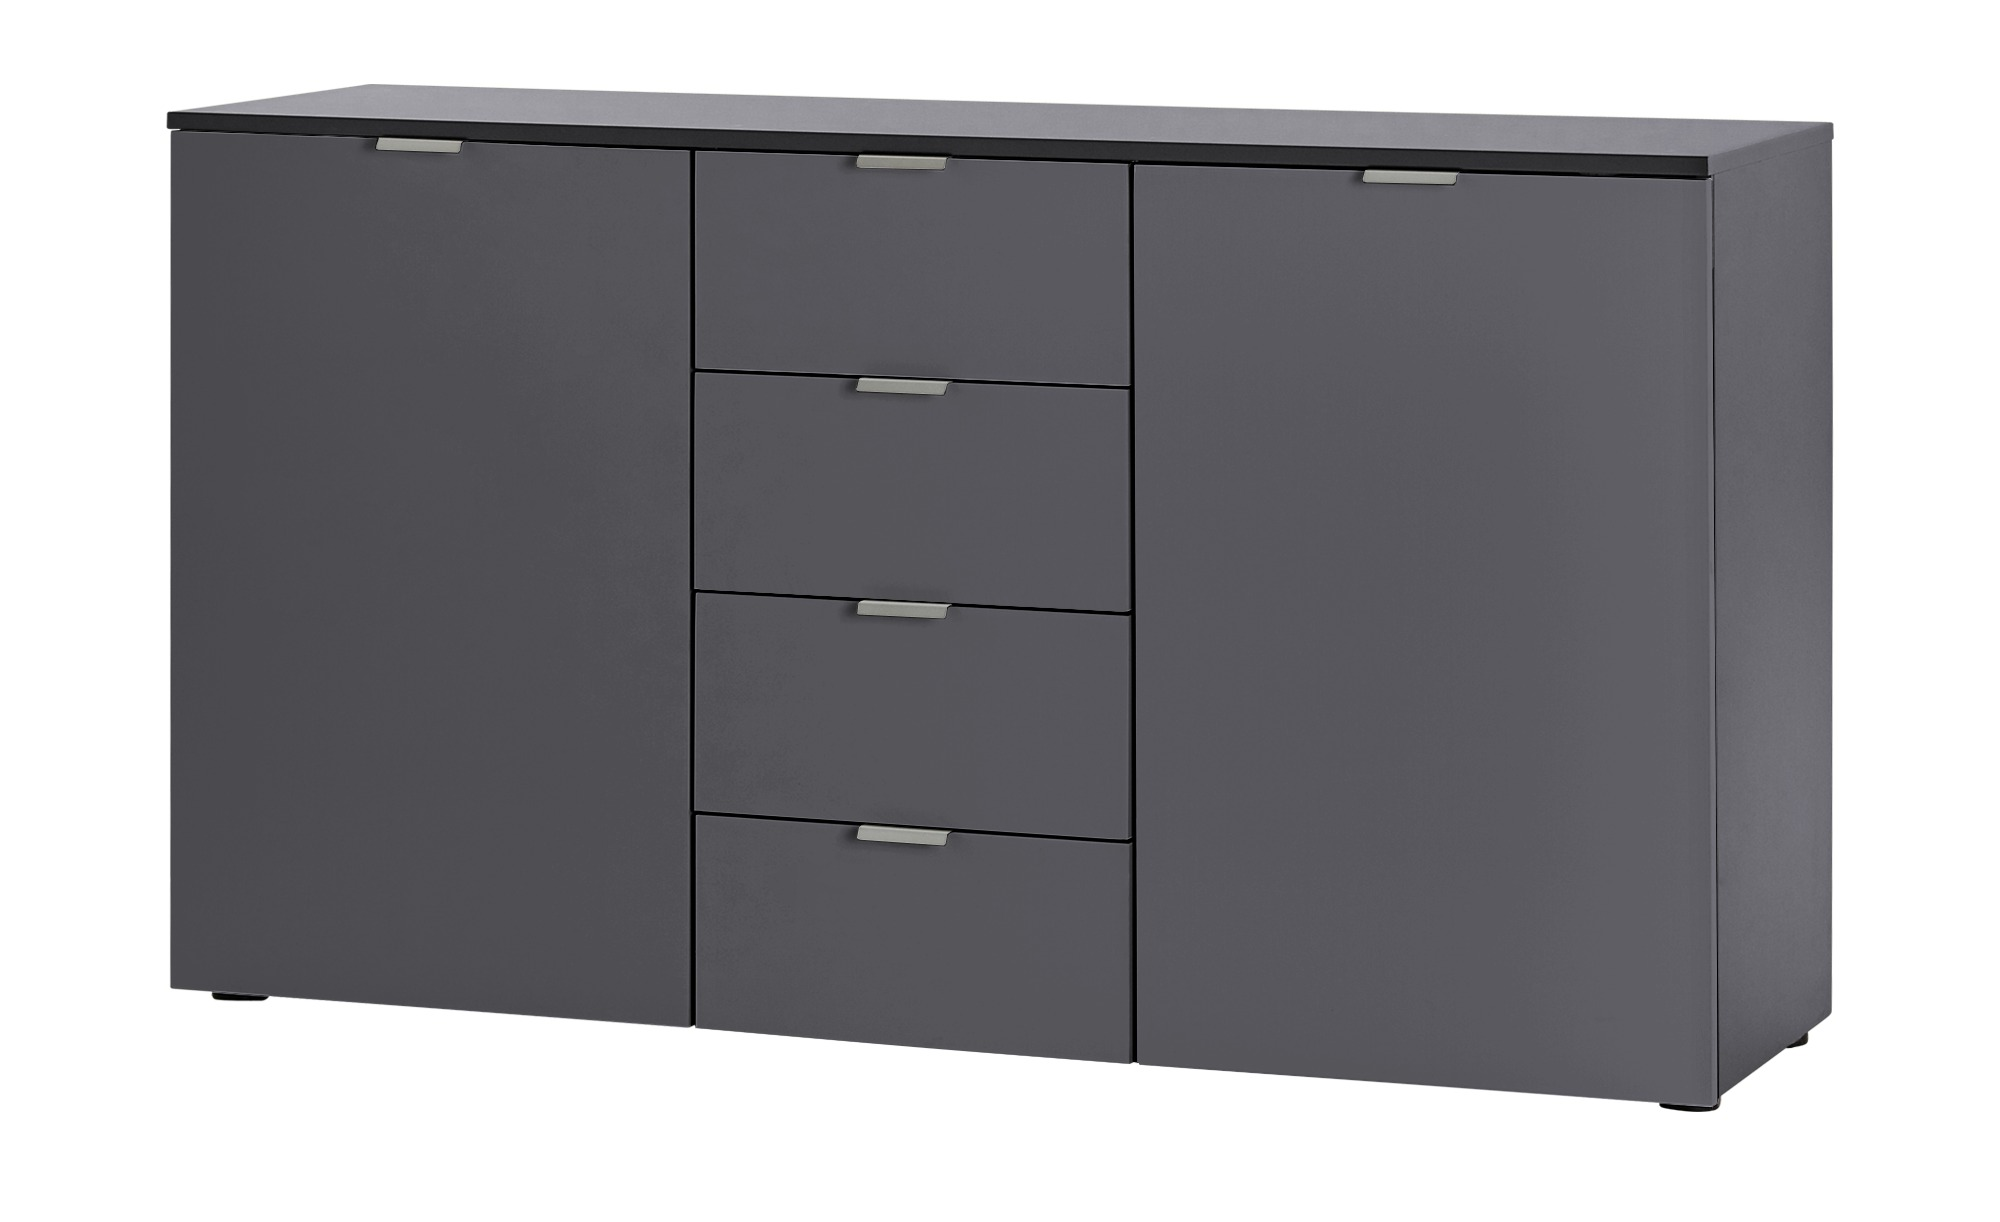 kommode dreamer breite 140 cm h he 80 cm grau online kaufen bei woonio. Black Bedroom Furniture Sets. Home Design Ideas